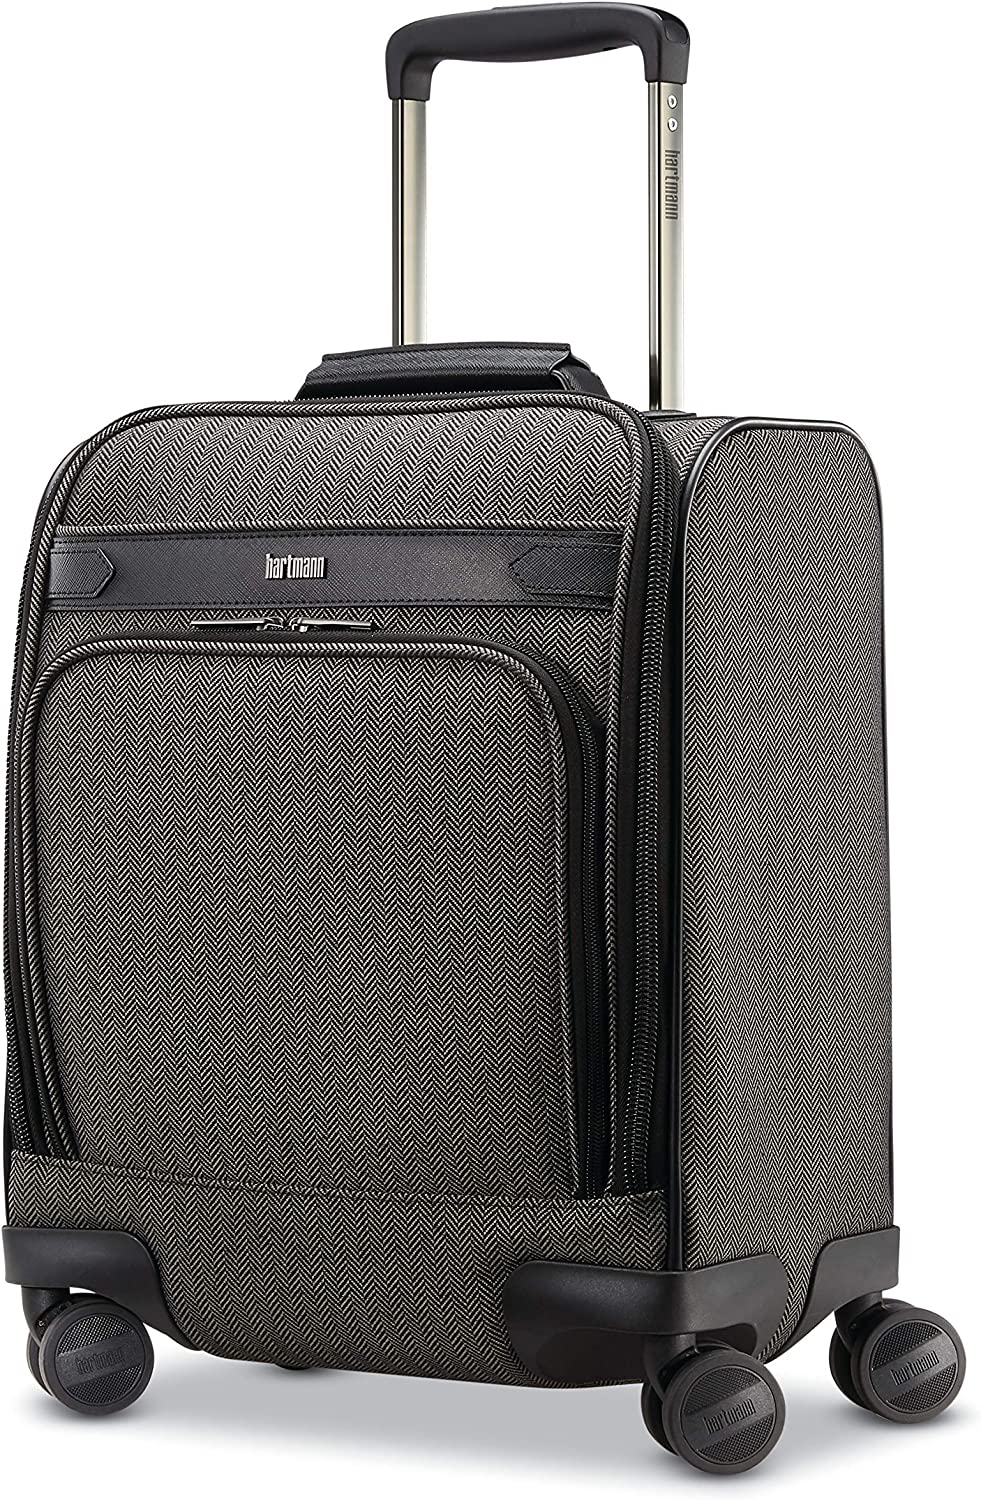 Hartmann Deluxe Underseat Max 61% OFF Carry On Black Fresno Mall Spinner O Herringbone